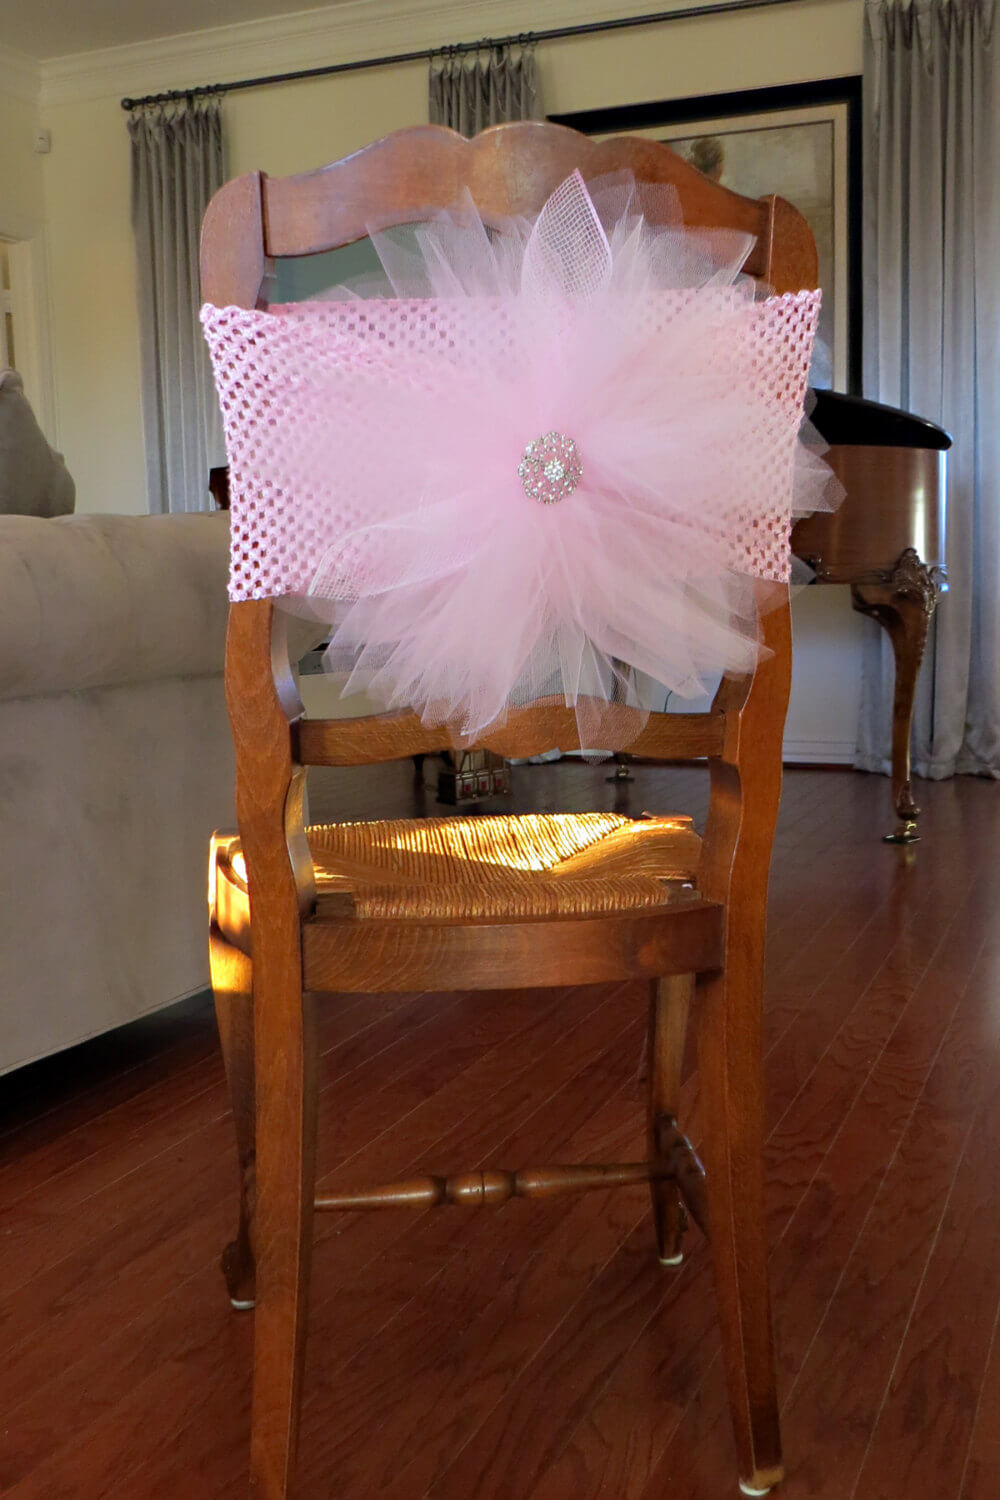 High Quality Tulle Chair Cover With Crochet Elastic Band   For Bridal Shower, Baby Shower,  Tutu